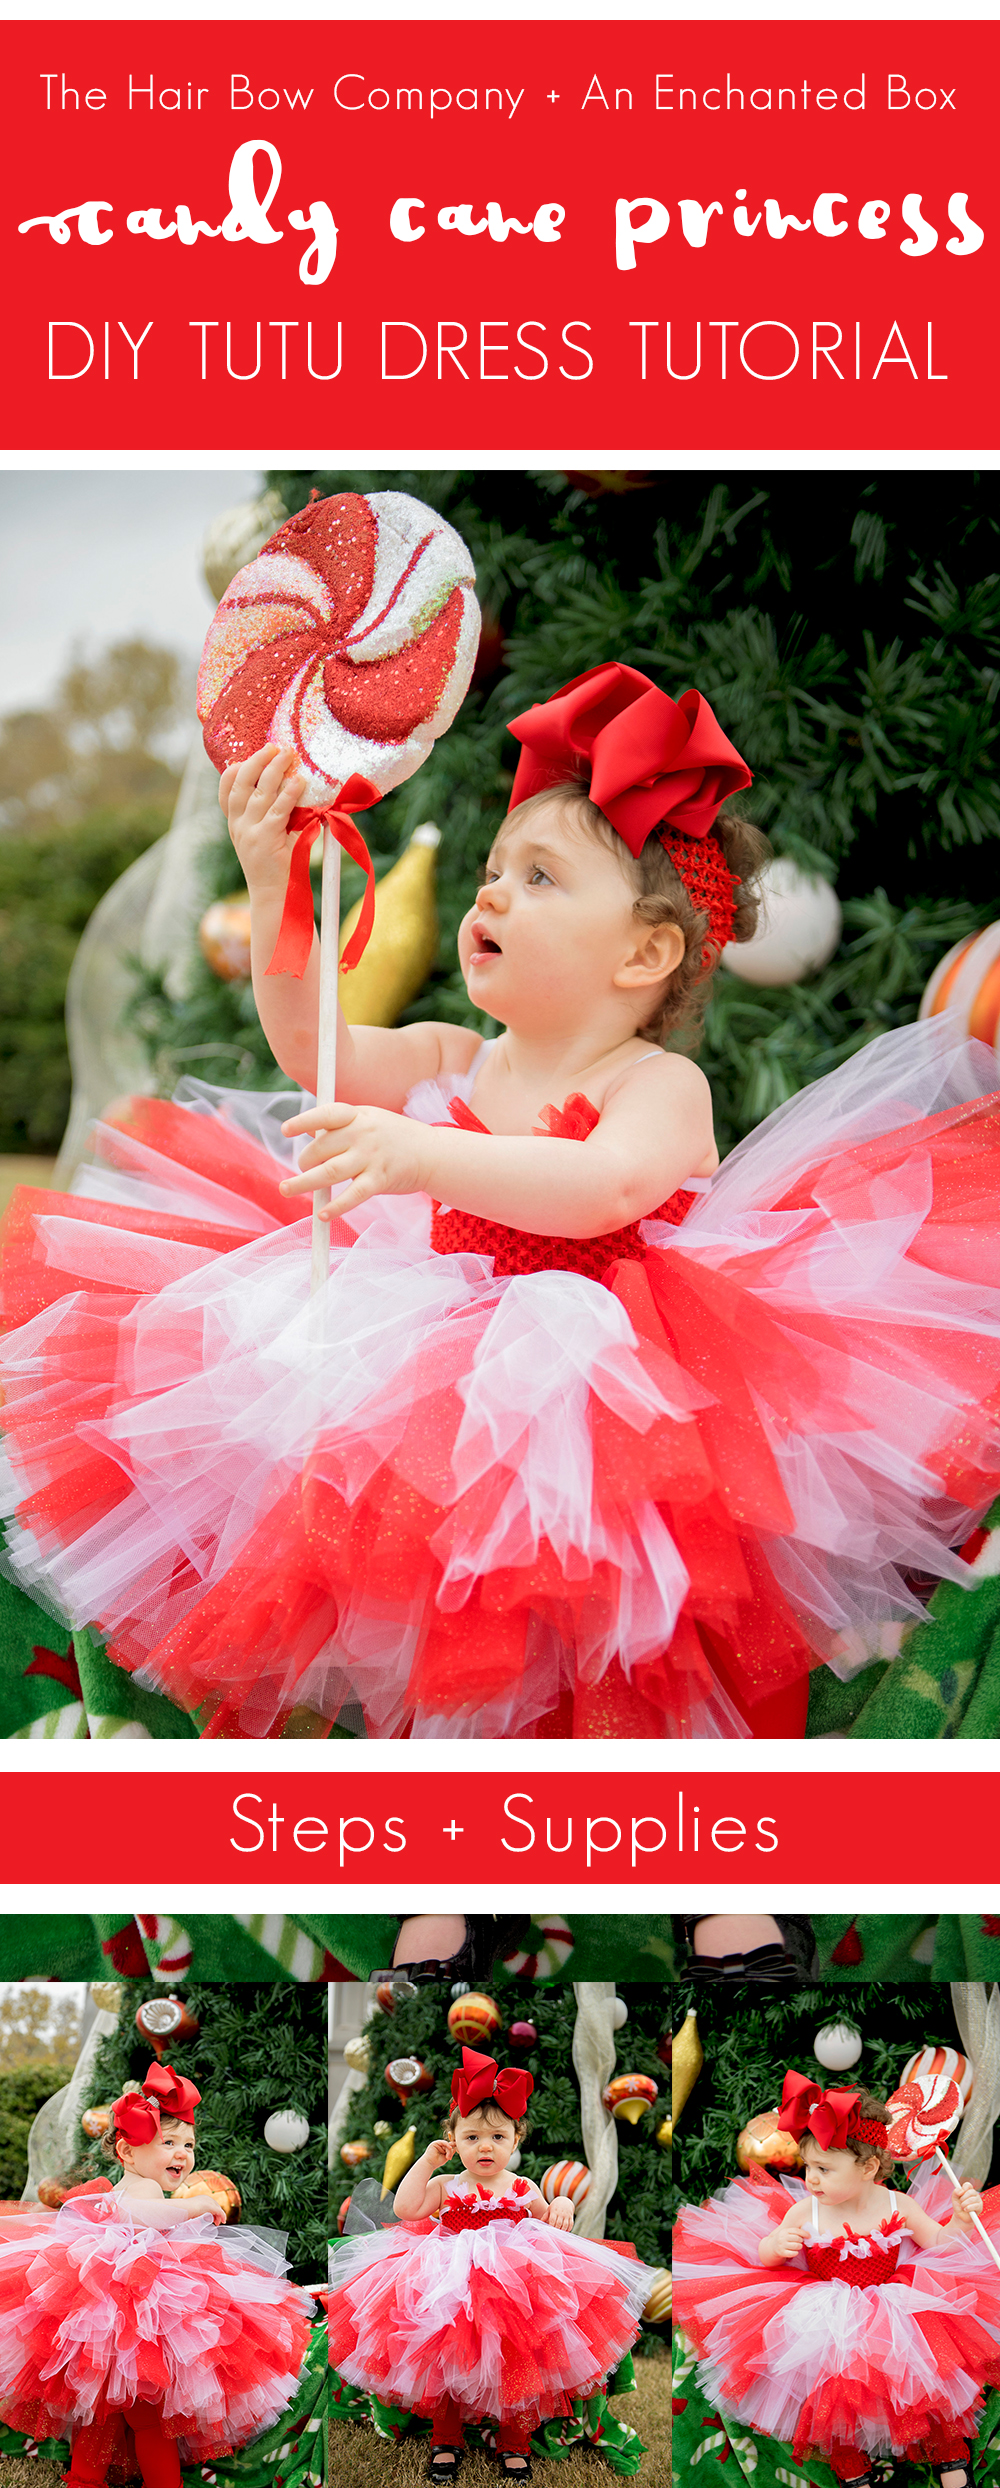 Blog caitlin from an enchanted box on etsy has created another darling tutu dress for us and is back on the blog this week this candy cane princess tutu dress solutioingenieria Choice Image